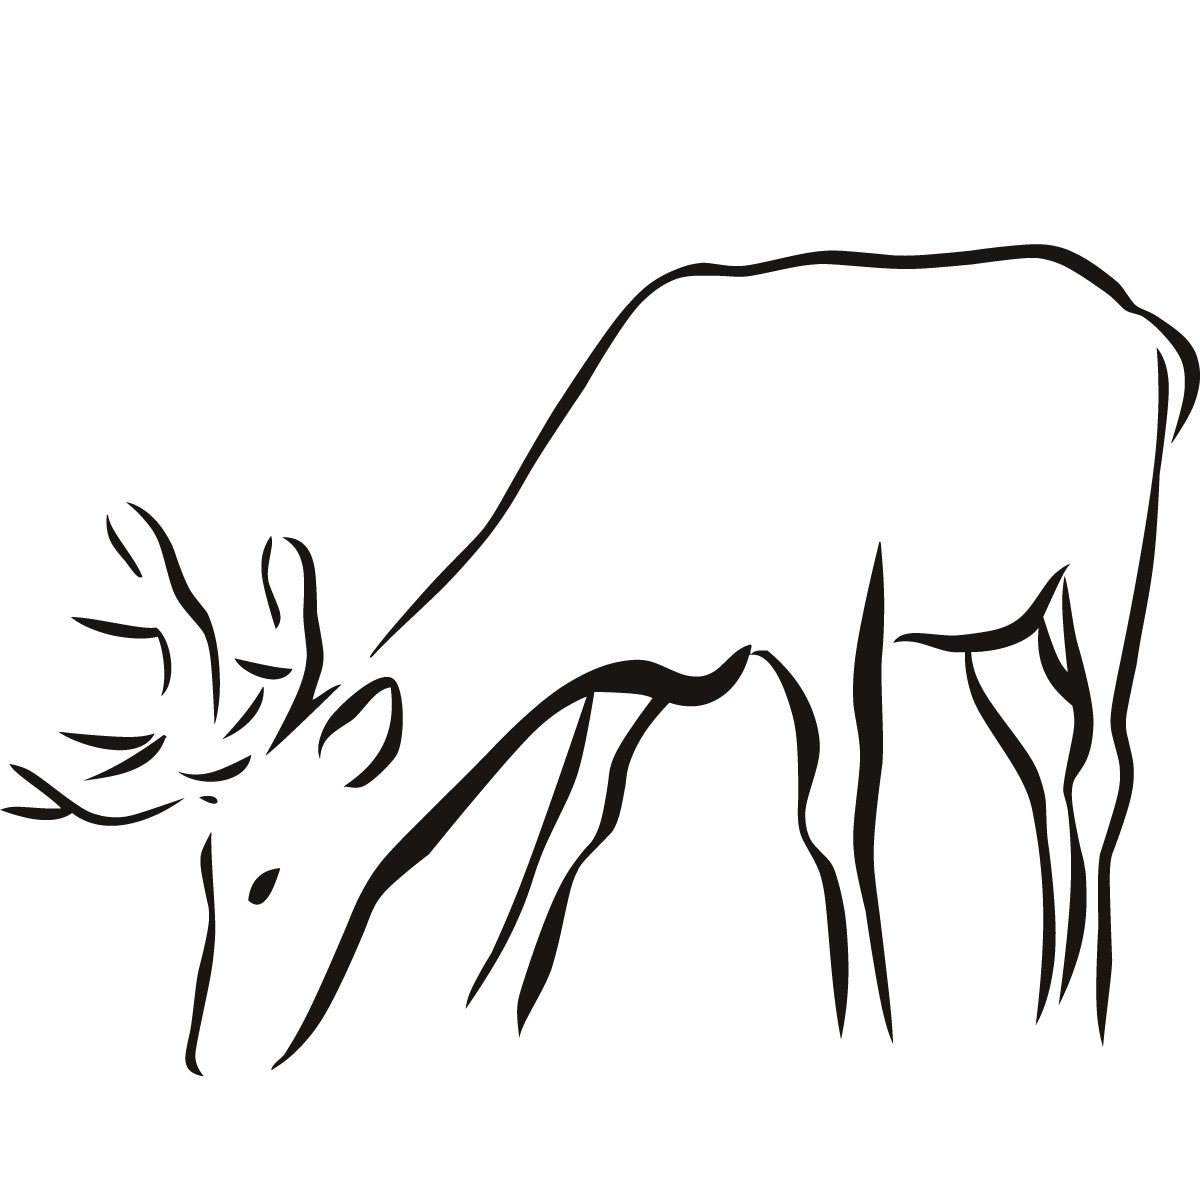 Outline Of Animals Popular With Images Of Outline Of 77 #10799.